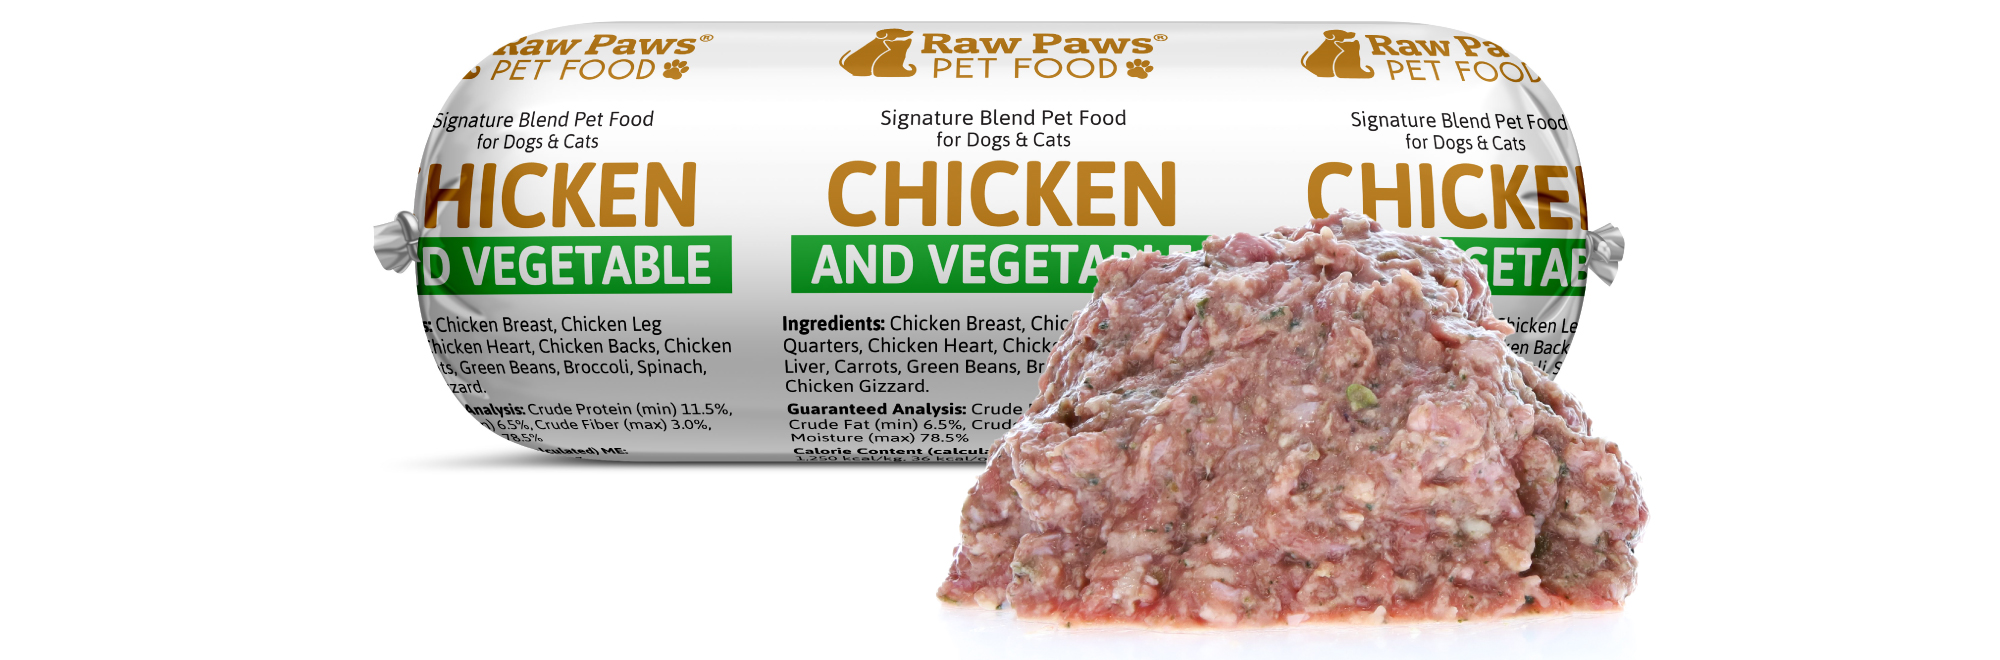 Raw Paws Signature Blend Complete Chicken & Vegetable for Dogs & Cats, 1 lb